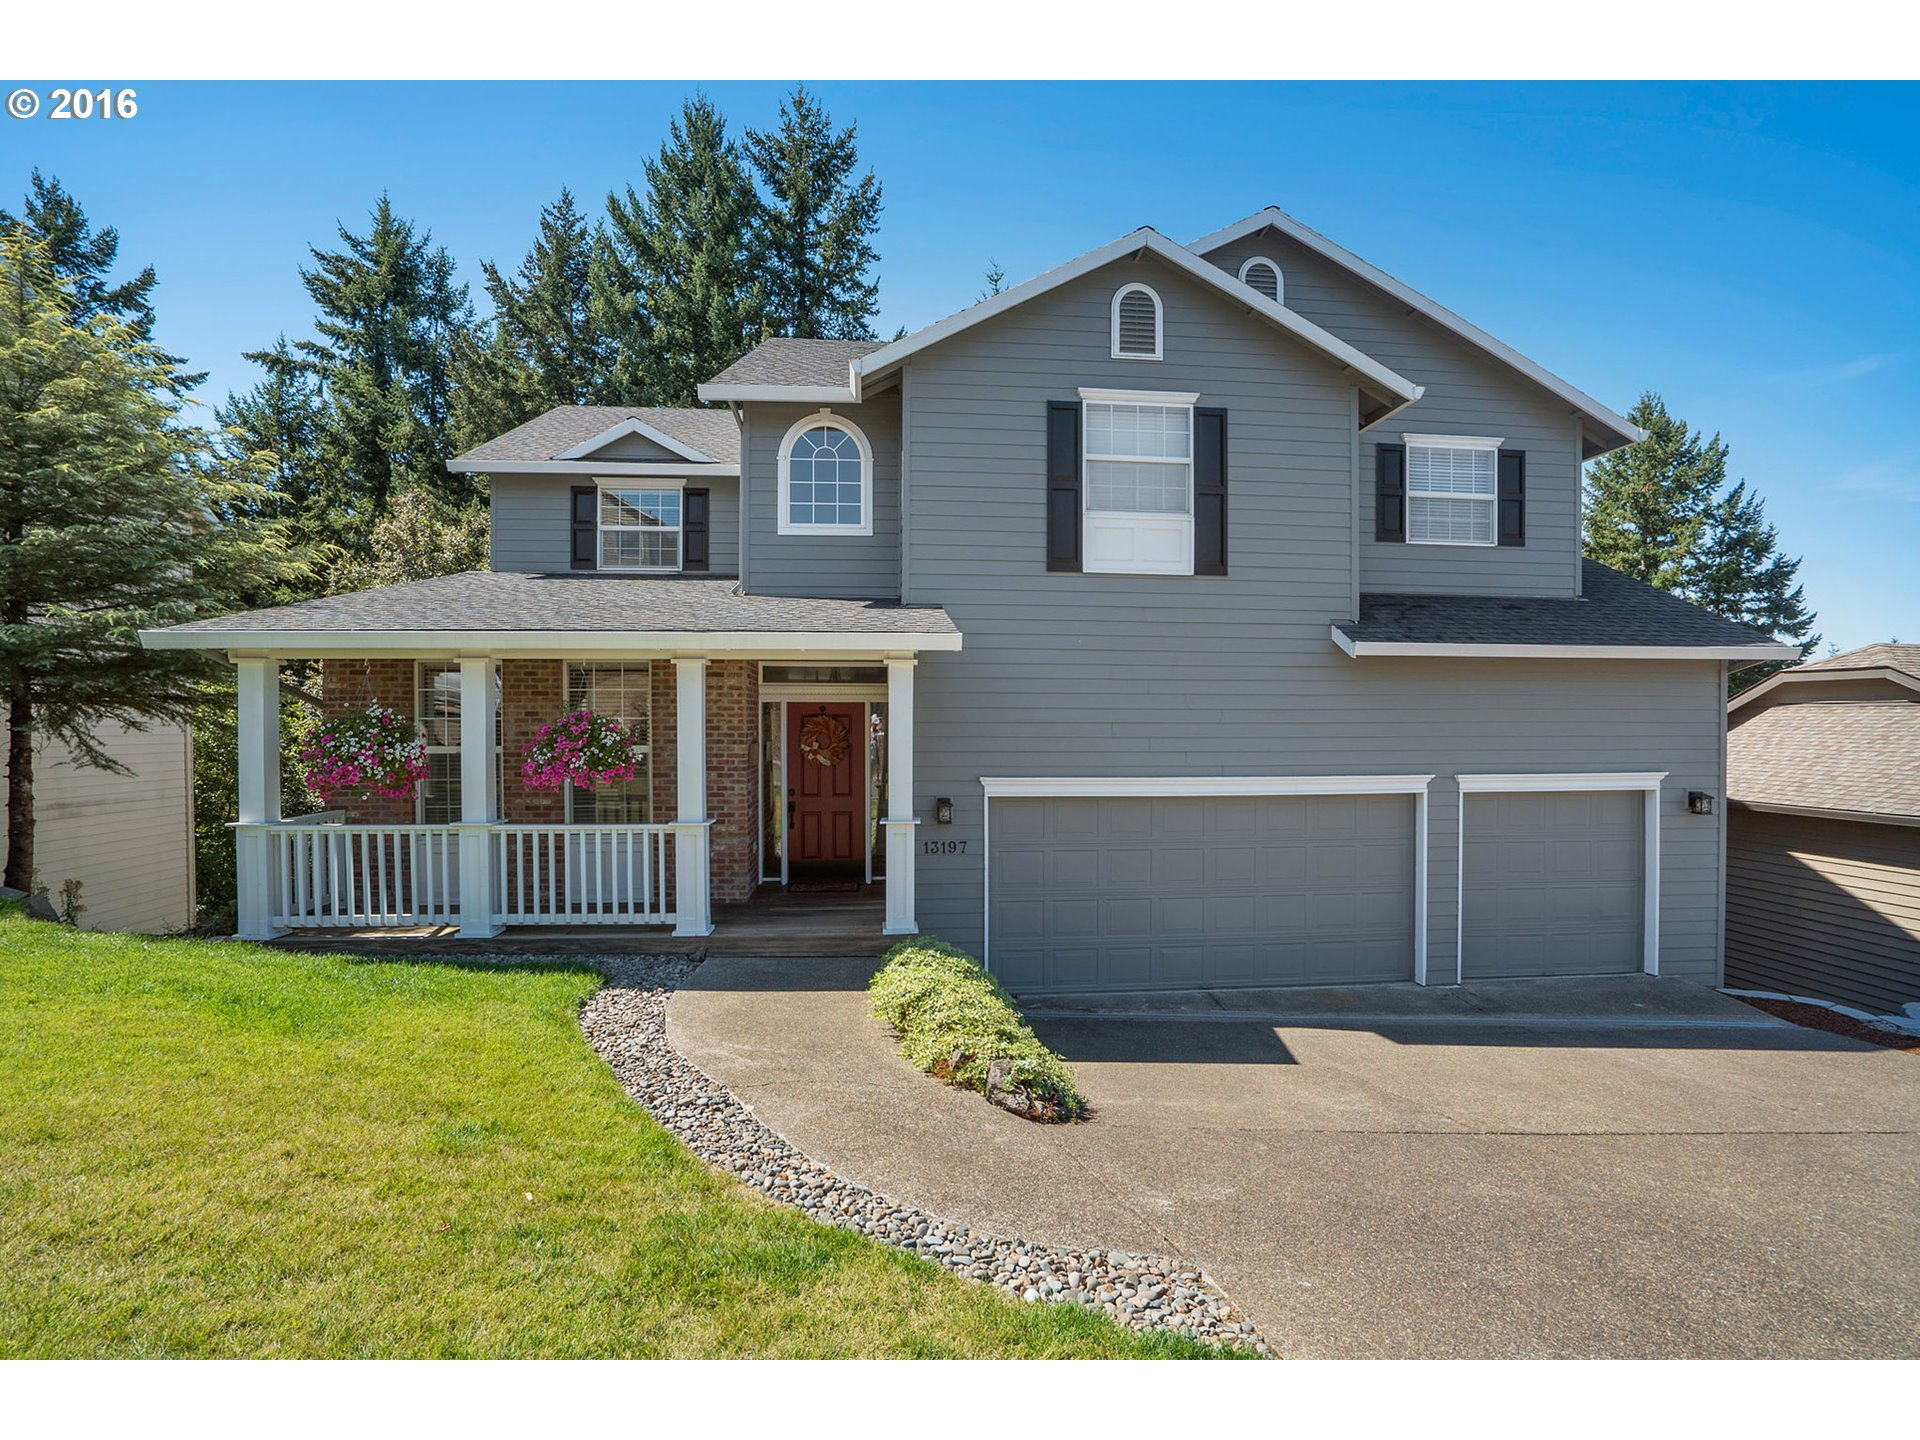 13197 sw essex dr tigard or 97223 mls 17474309 pdx listed